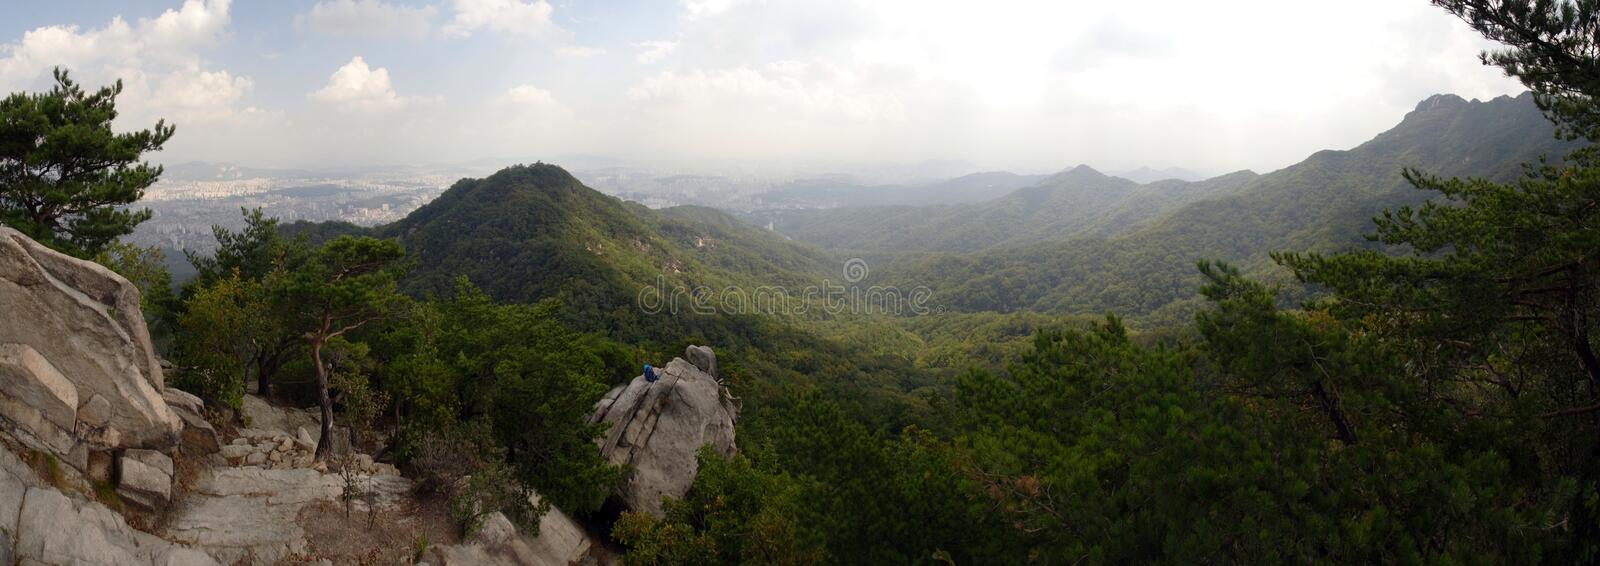 Bukhansan National Park stock image